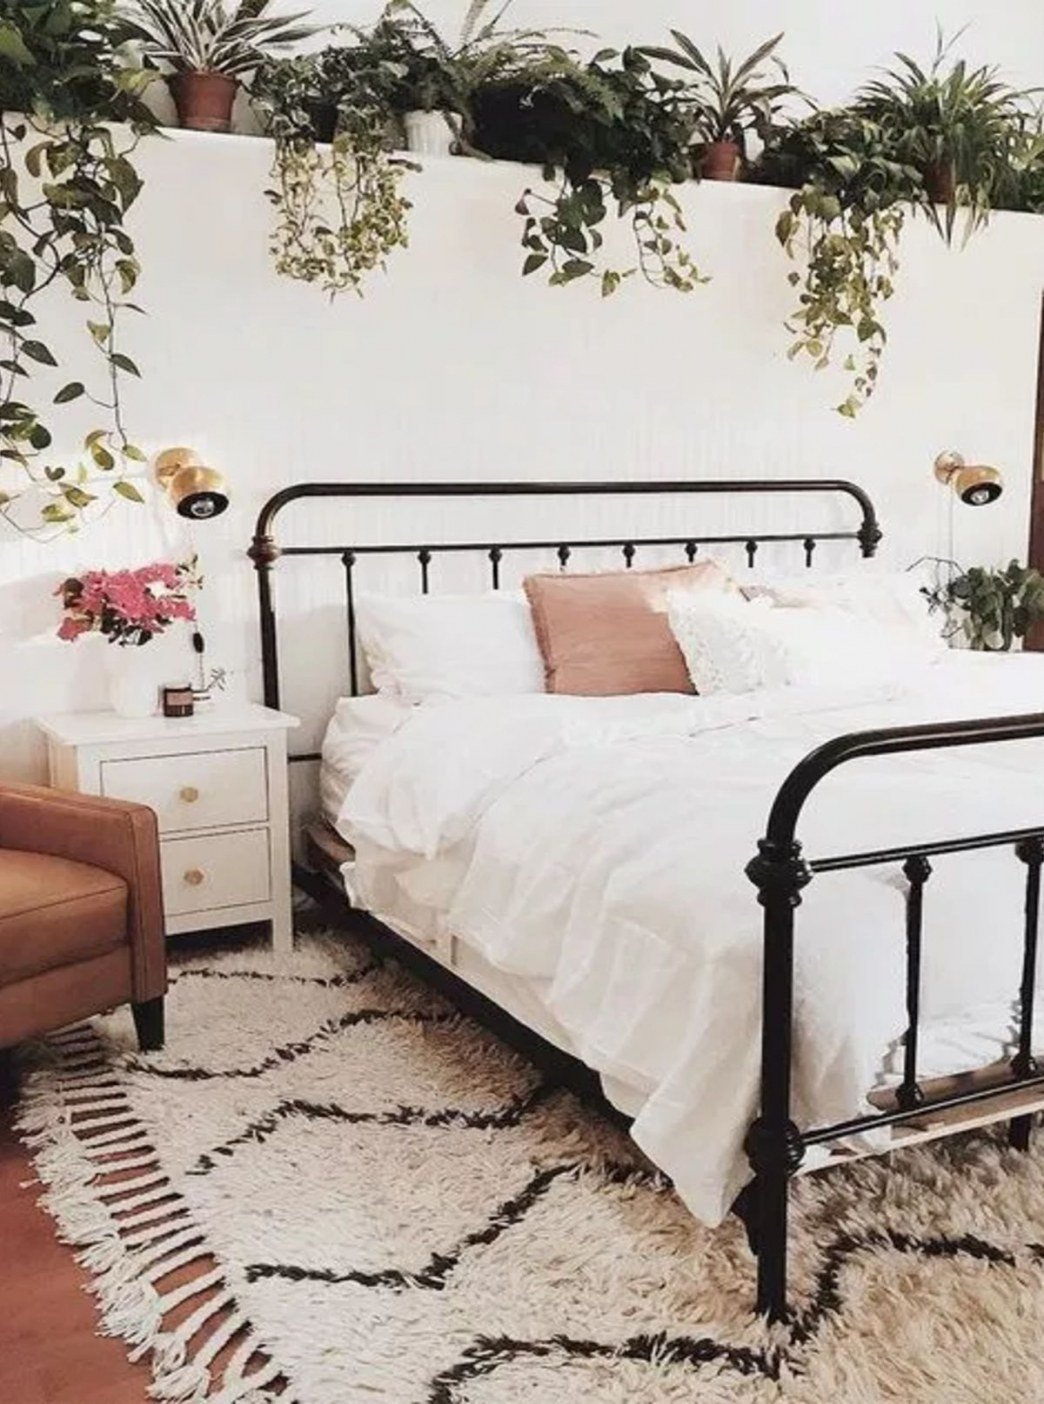 How to Decorate Your Bedroom Luxury Bohemian Decor Diy Bedroom Cool Gray Bedroom Decor Elegant